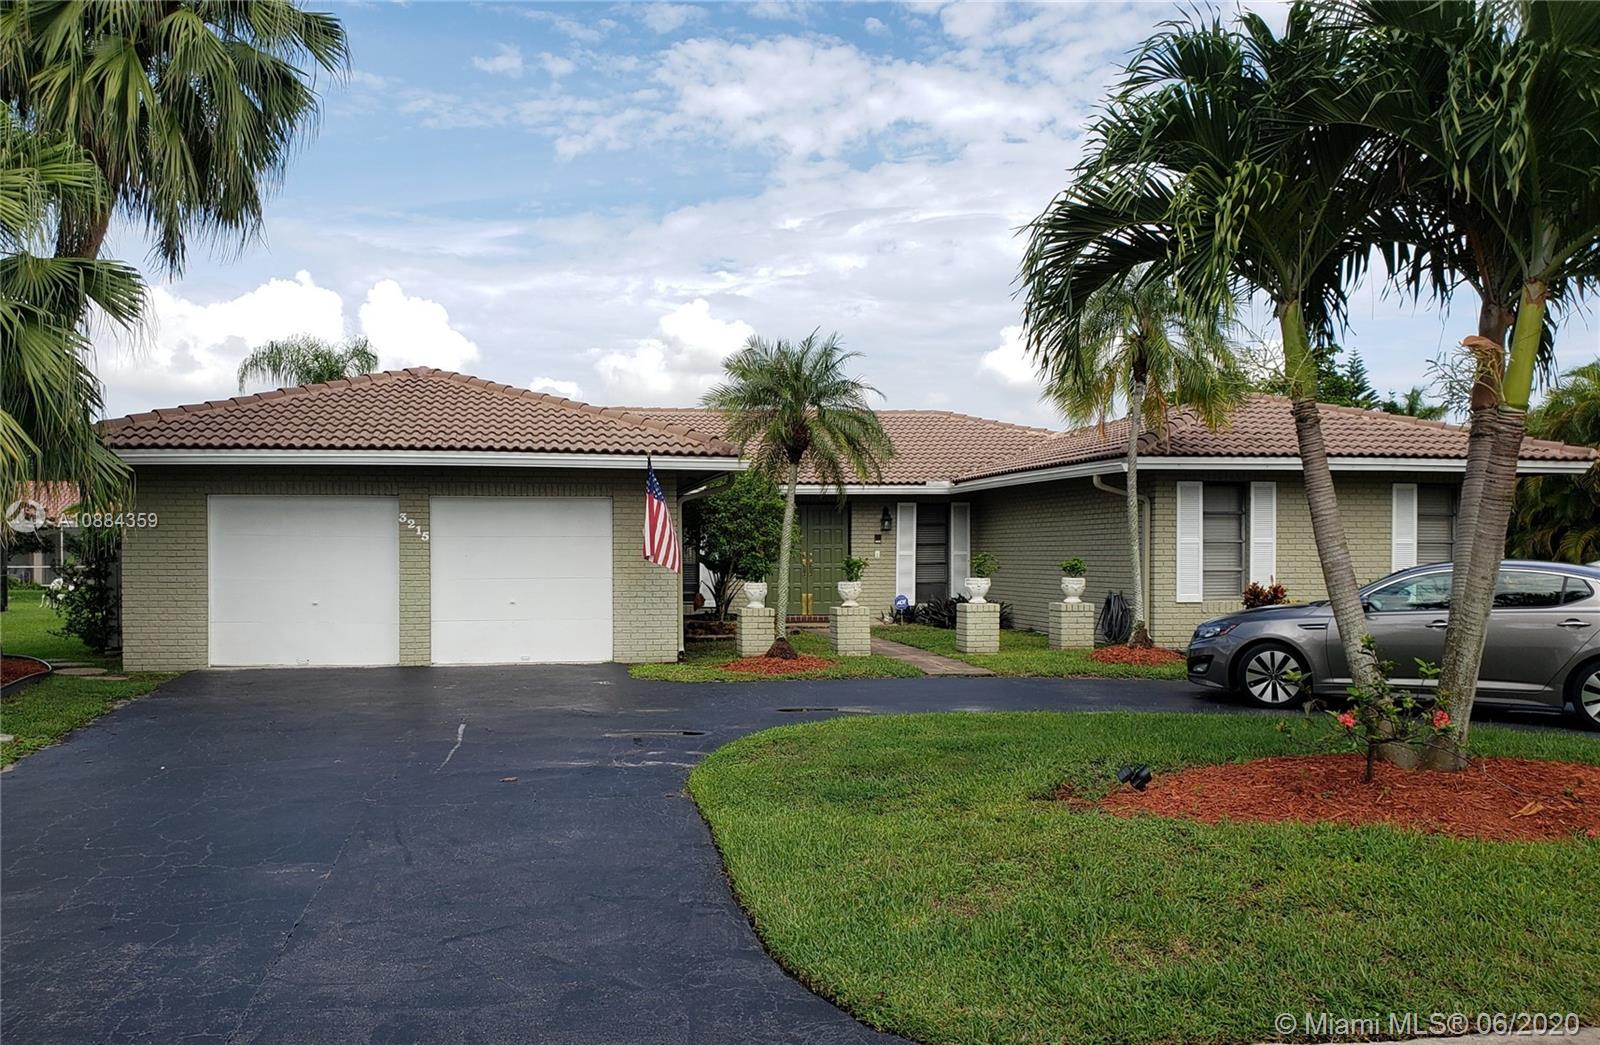 Welcome to this wonderful single story home where location meets convenience.  This property offers an open floor plan encompassing 3 bedrooms, an additional den/office/spare room, formal living room with 2 full bathrooms and an elegant styled half-bath off the main living area.  Immaculate finishes throughout, including a beautifully landscaped front yard, tile floors, contemporary master suite, & large living area.  Functional open kitchen offers stainless steel appliances and an island overlooking the family room. This home's layout is great for entertaining. Sliding glass doors open up to the entertainment area or formal living room overlooking the pool. The backyard is a private, tropical oasis with charming landscaping. Your dream home awaits - call today to make an appointment.